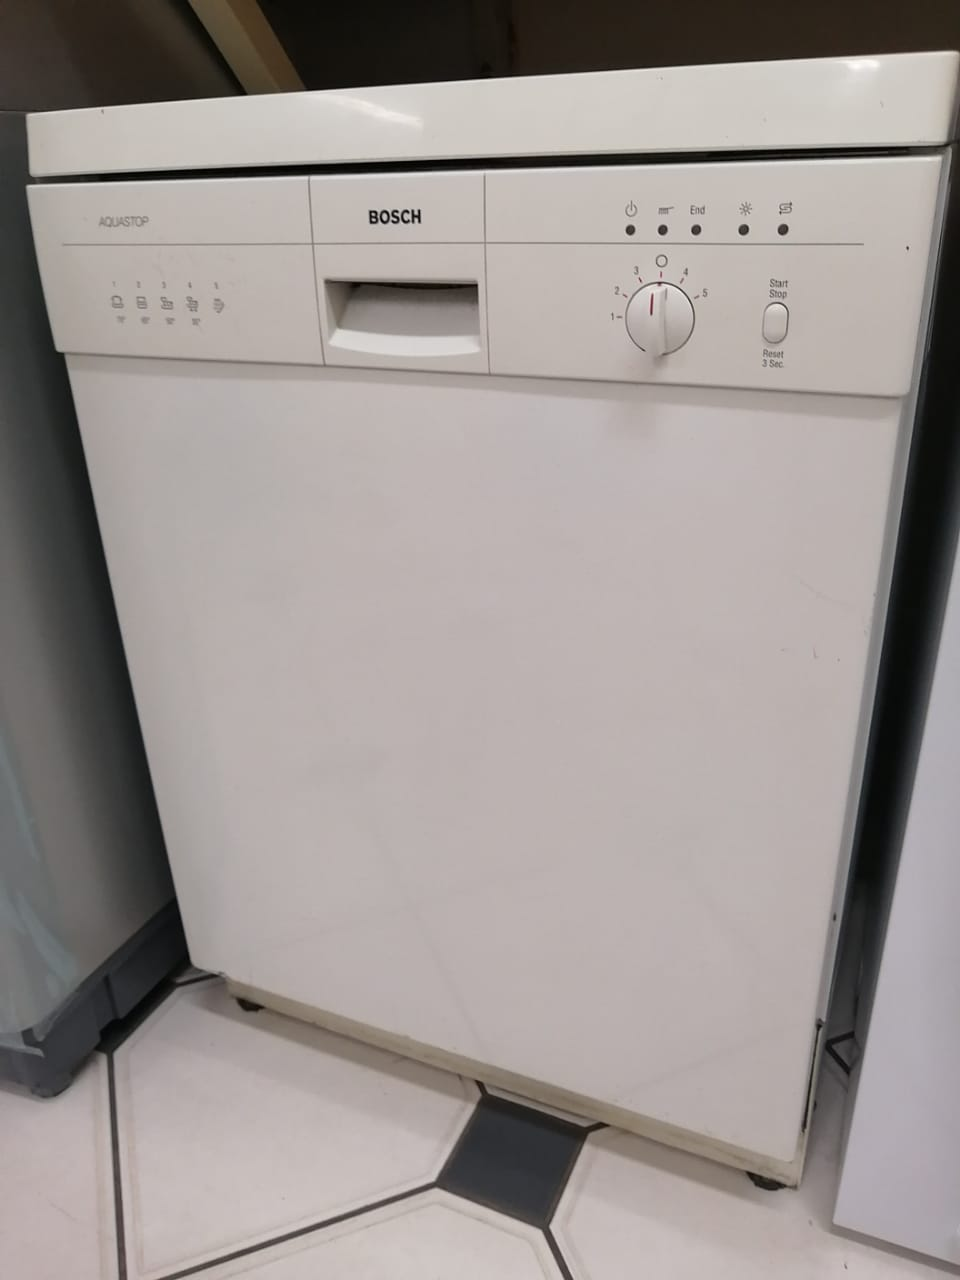 Bosch 12 Place Dishwasher for sale!